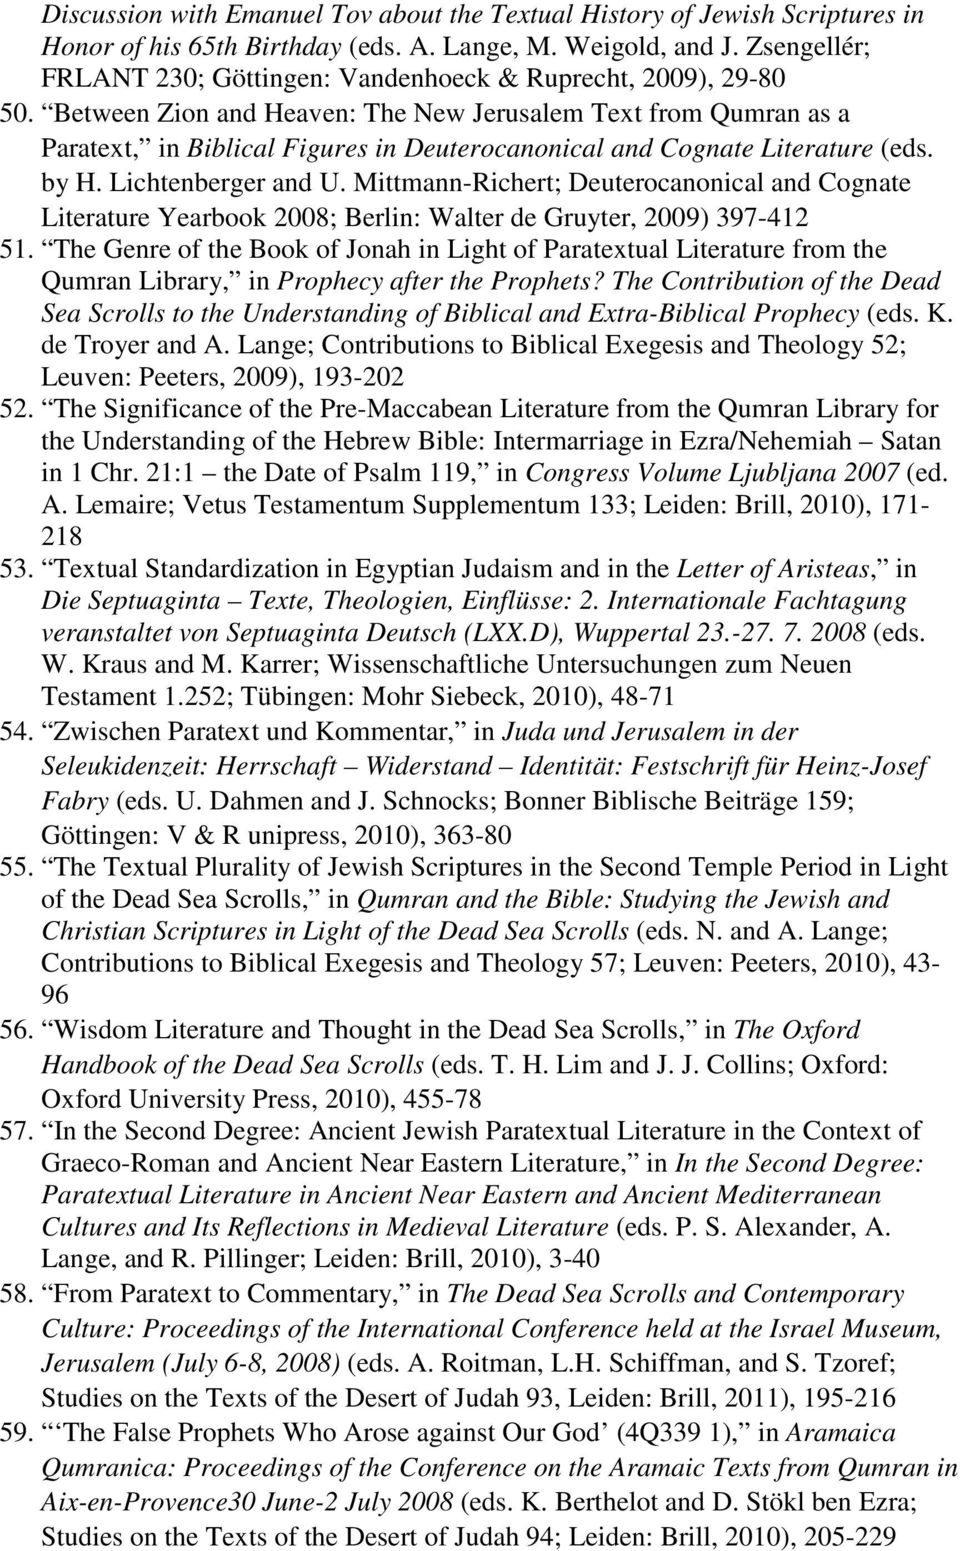 Between Zion and Heaven: The New Jerusalem Text from Qumran as a Paratext, in Biblical Figures in Deuterocanonical and Cognate Literature (eds. by H. Lichtenberger and U.